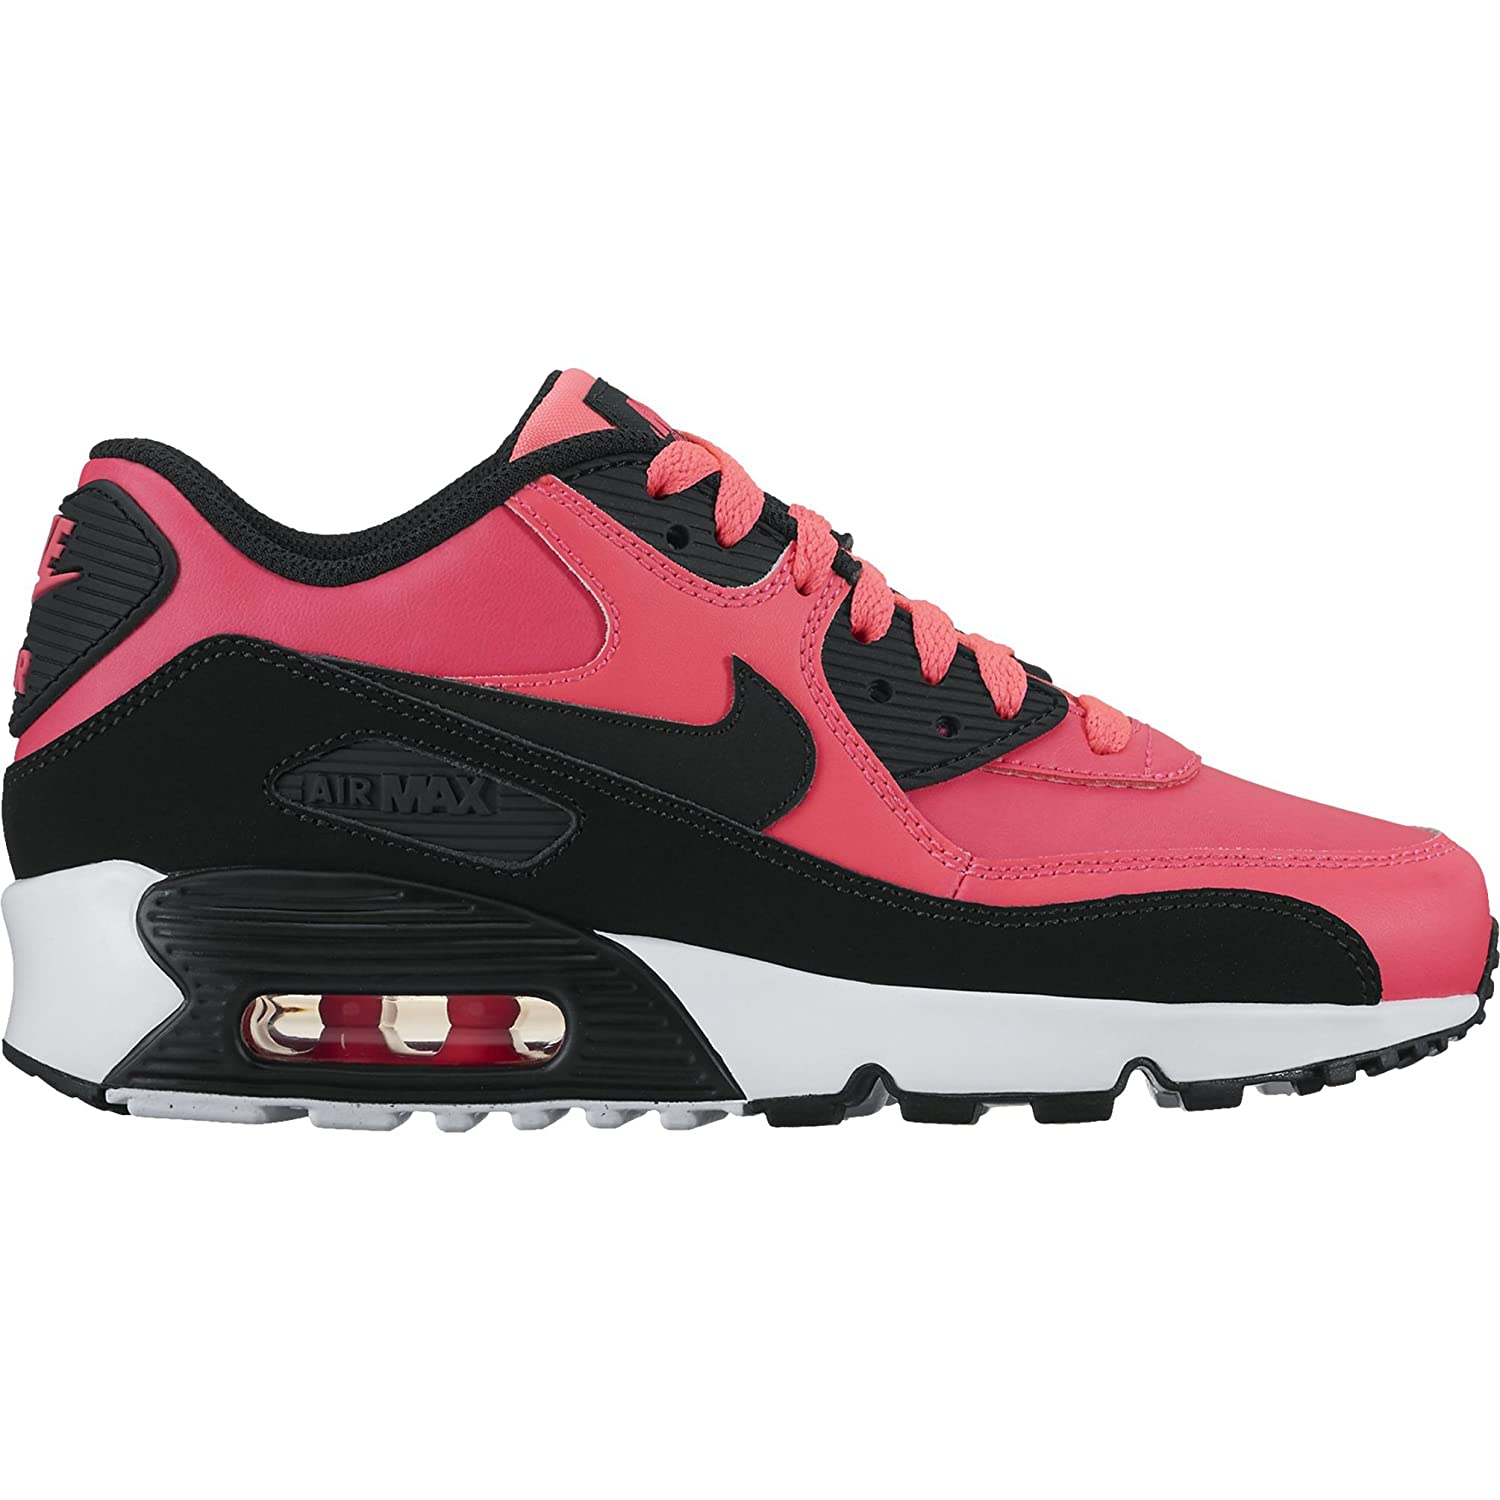 best service 48ee7 1e5d1 Amazon.com   Nike Air Max 90 LTR Big Kid s Shoes Racer Pink Black White  833376-600 (4 M US)   Running